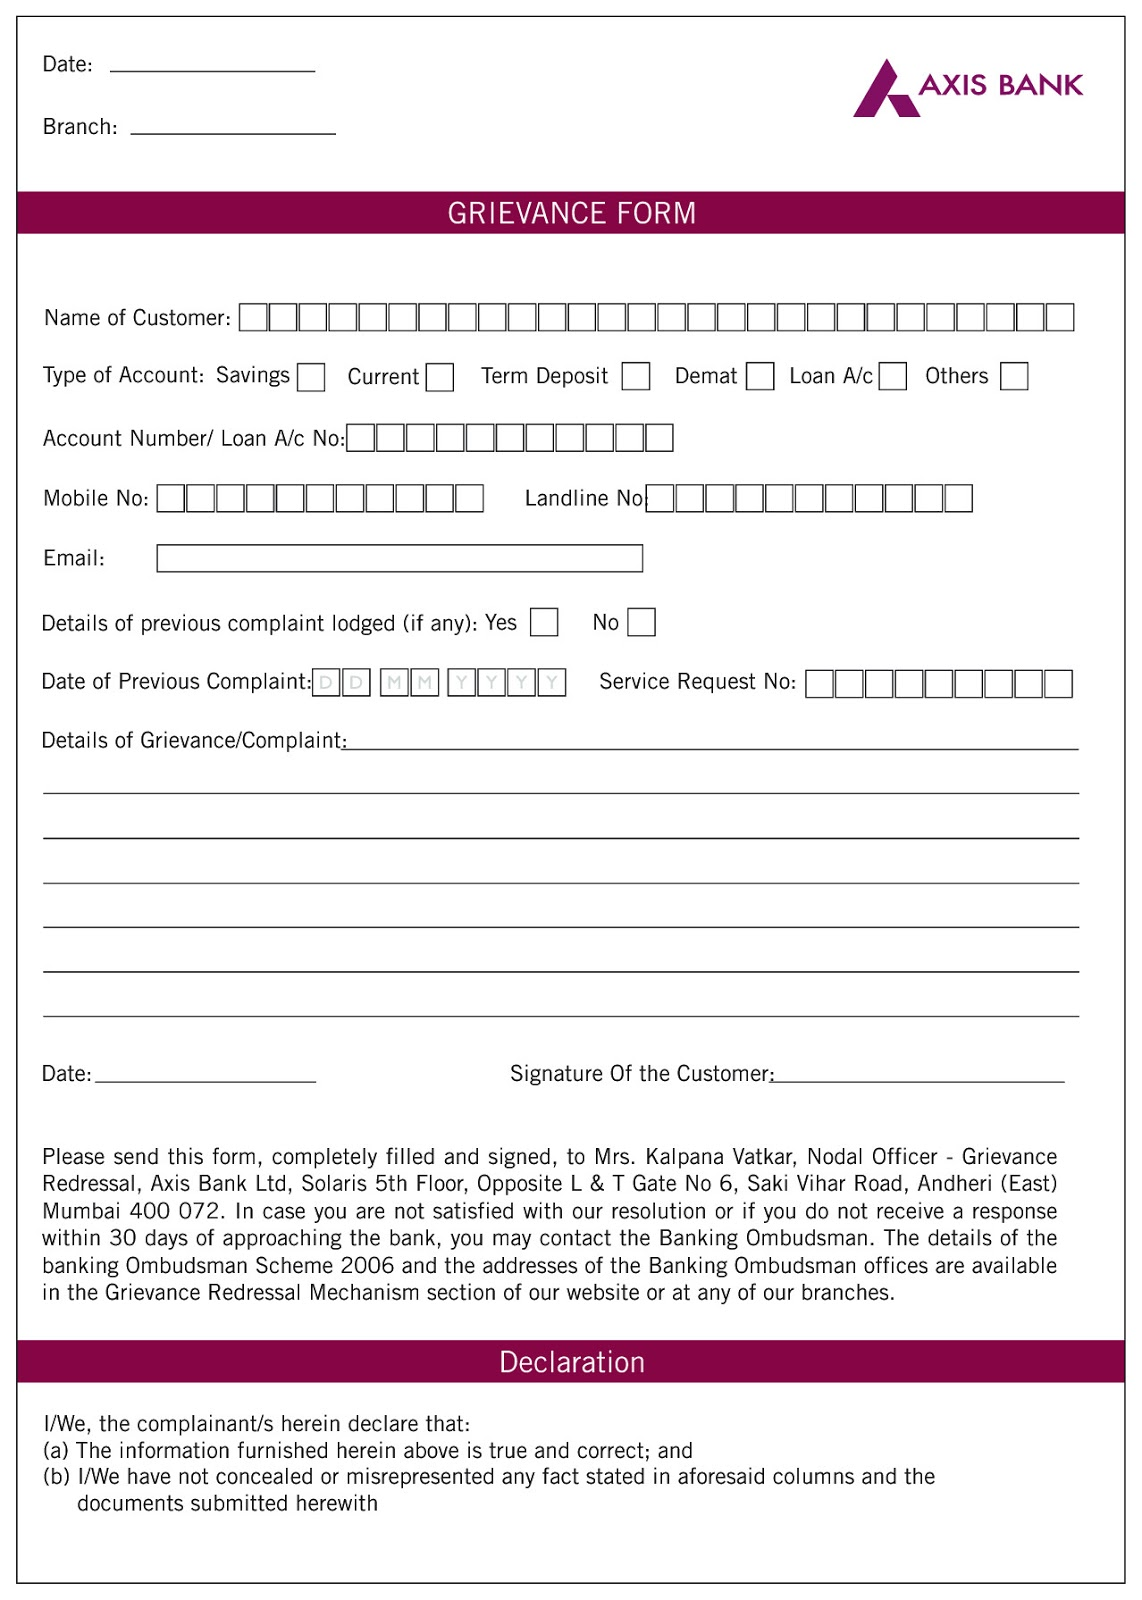 iconnect form axis bank pdf